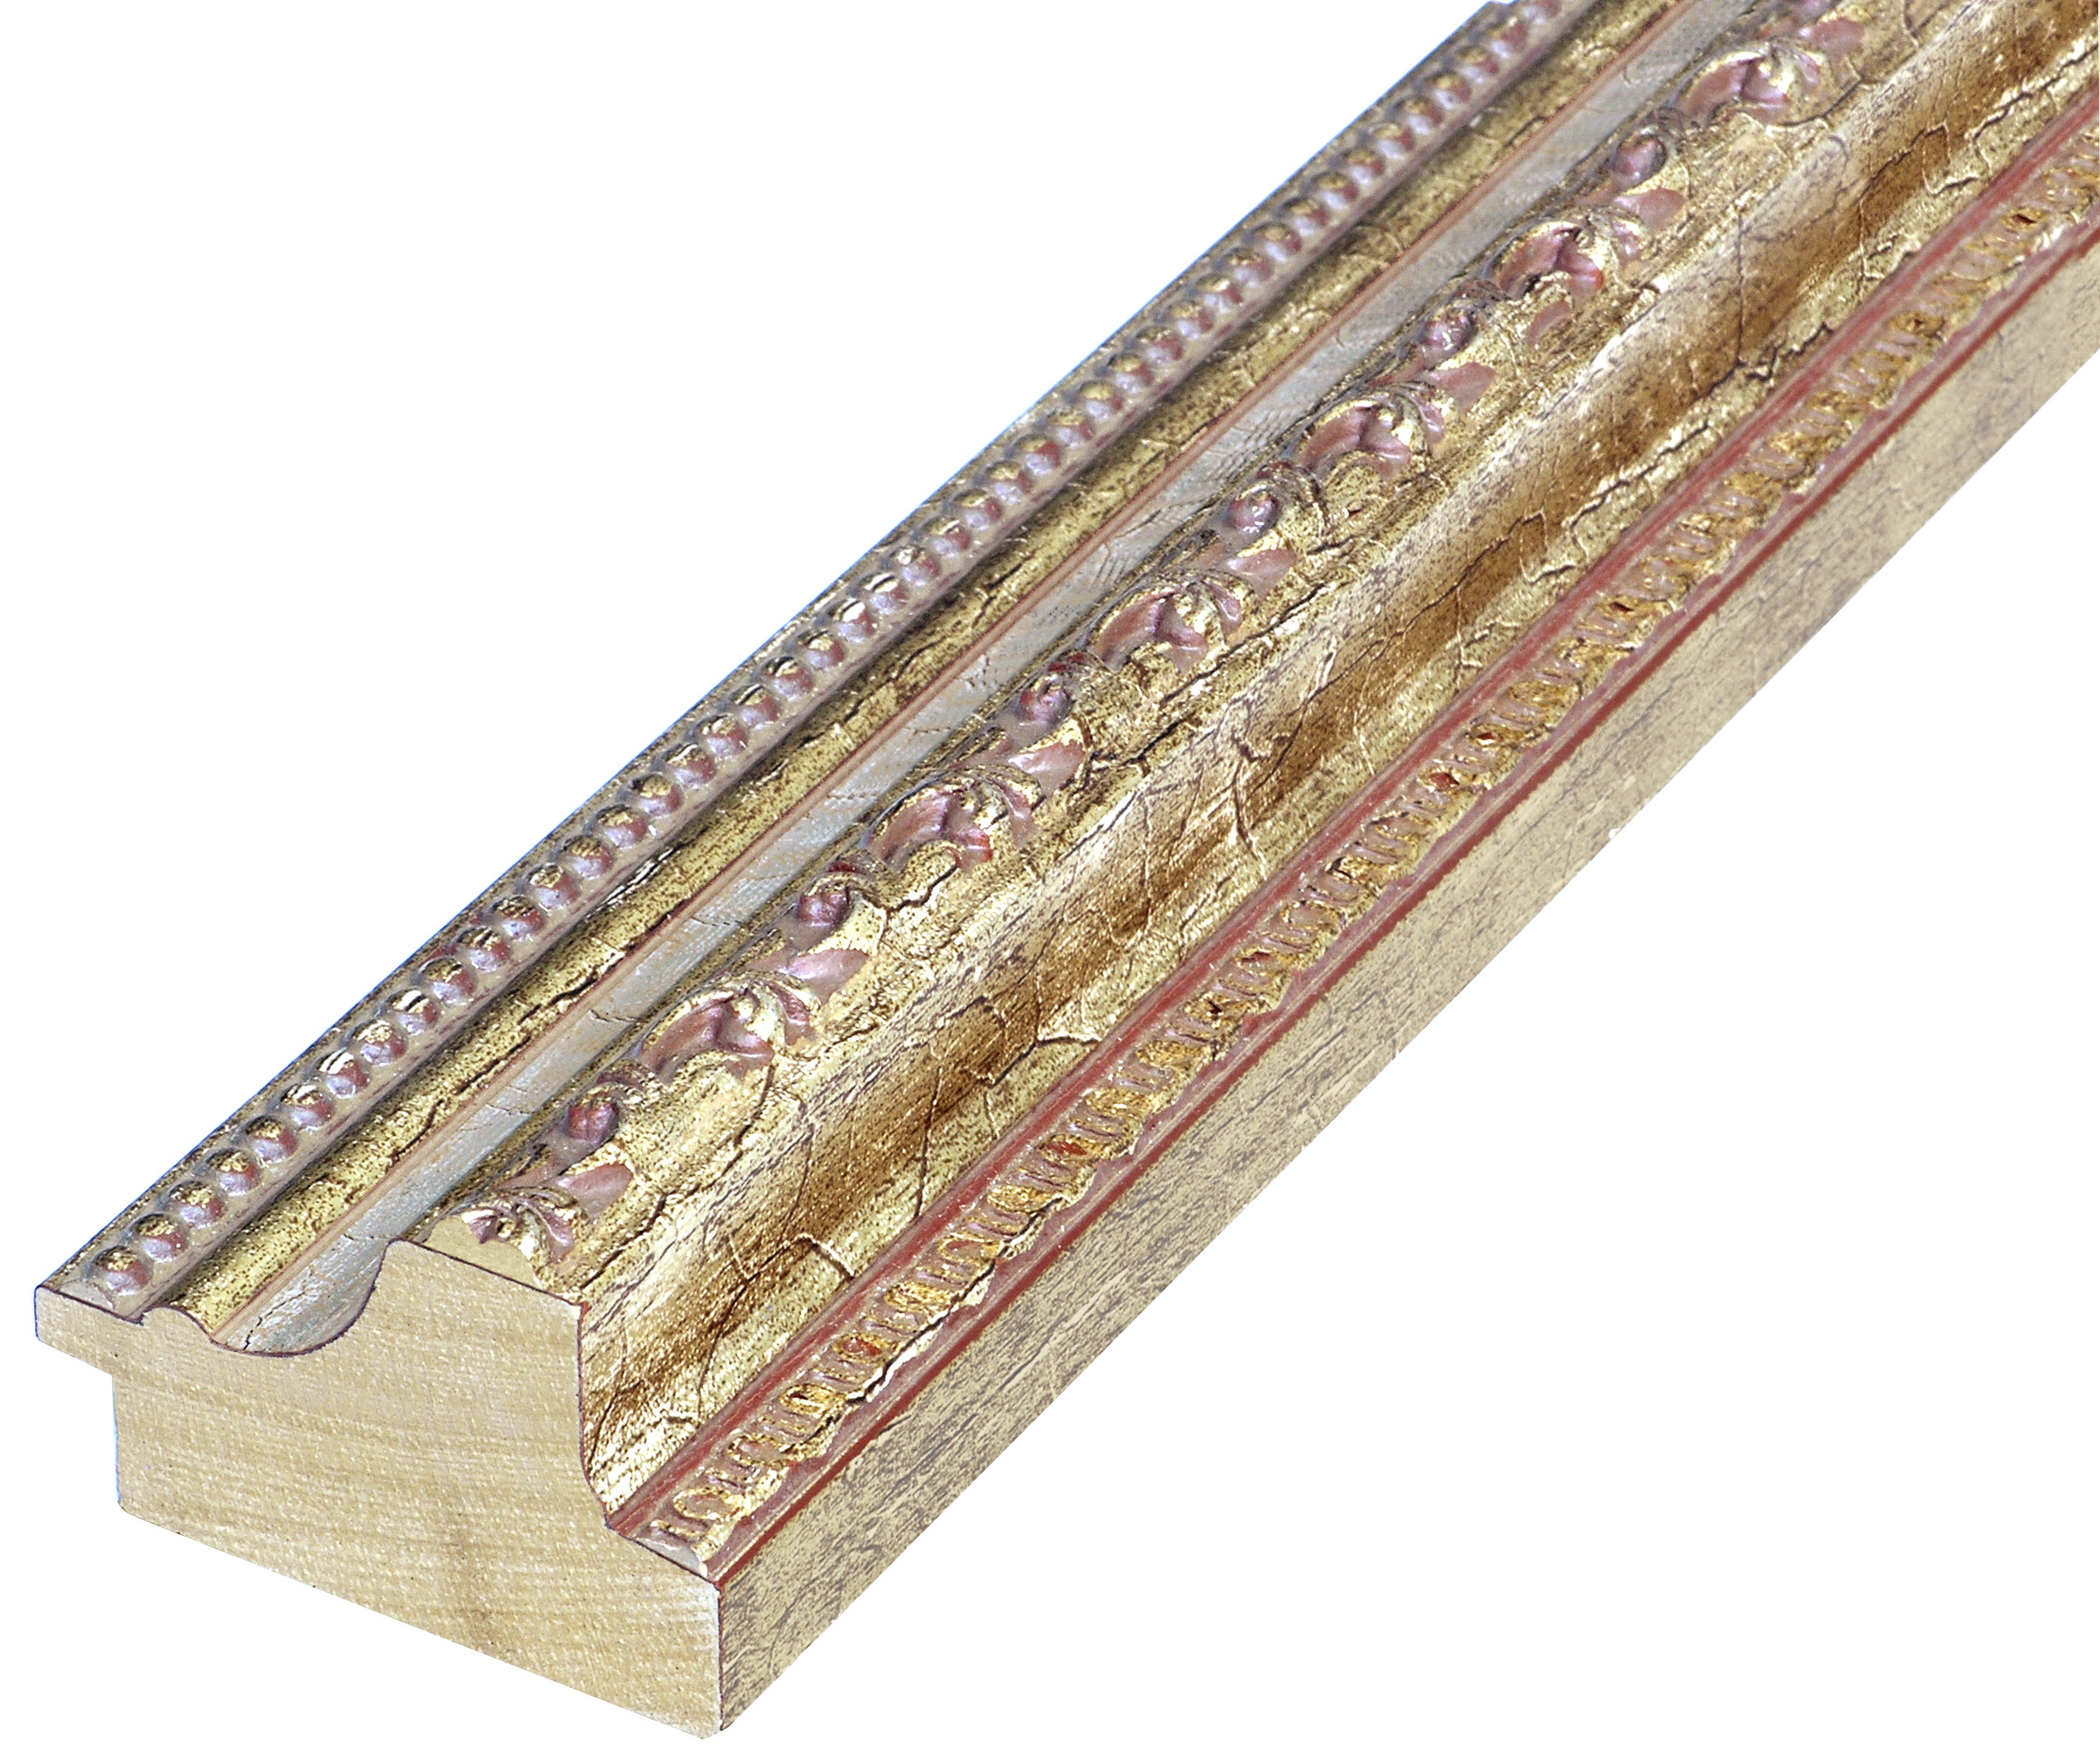 Moulding ayous - width 53mm height 35 - gold, silver band